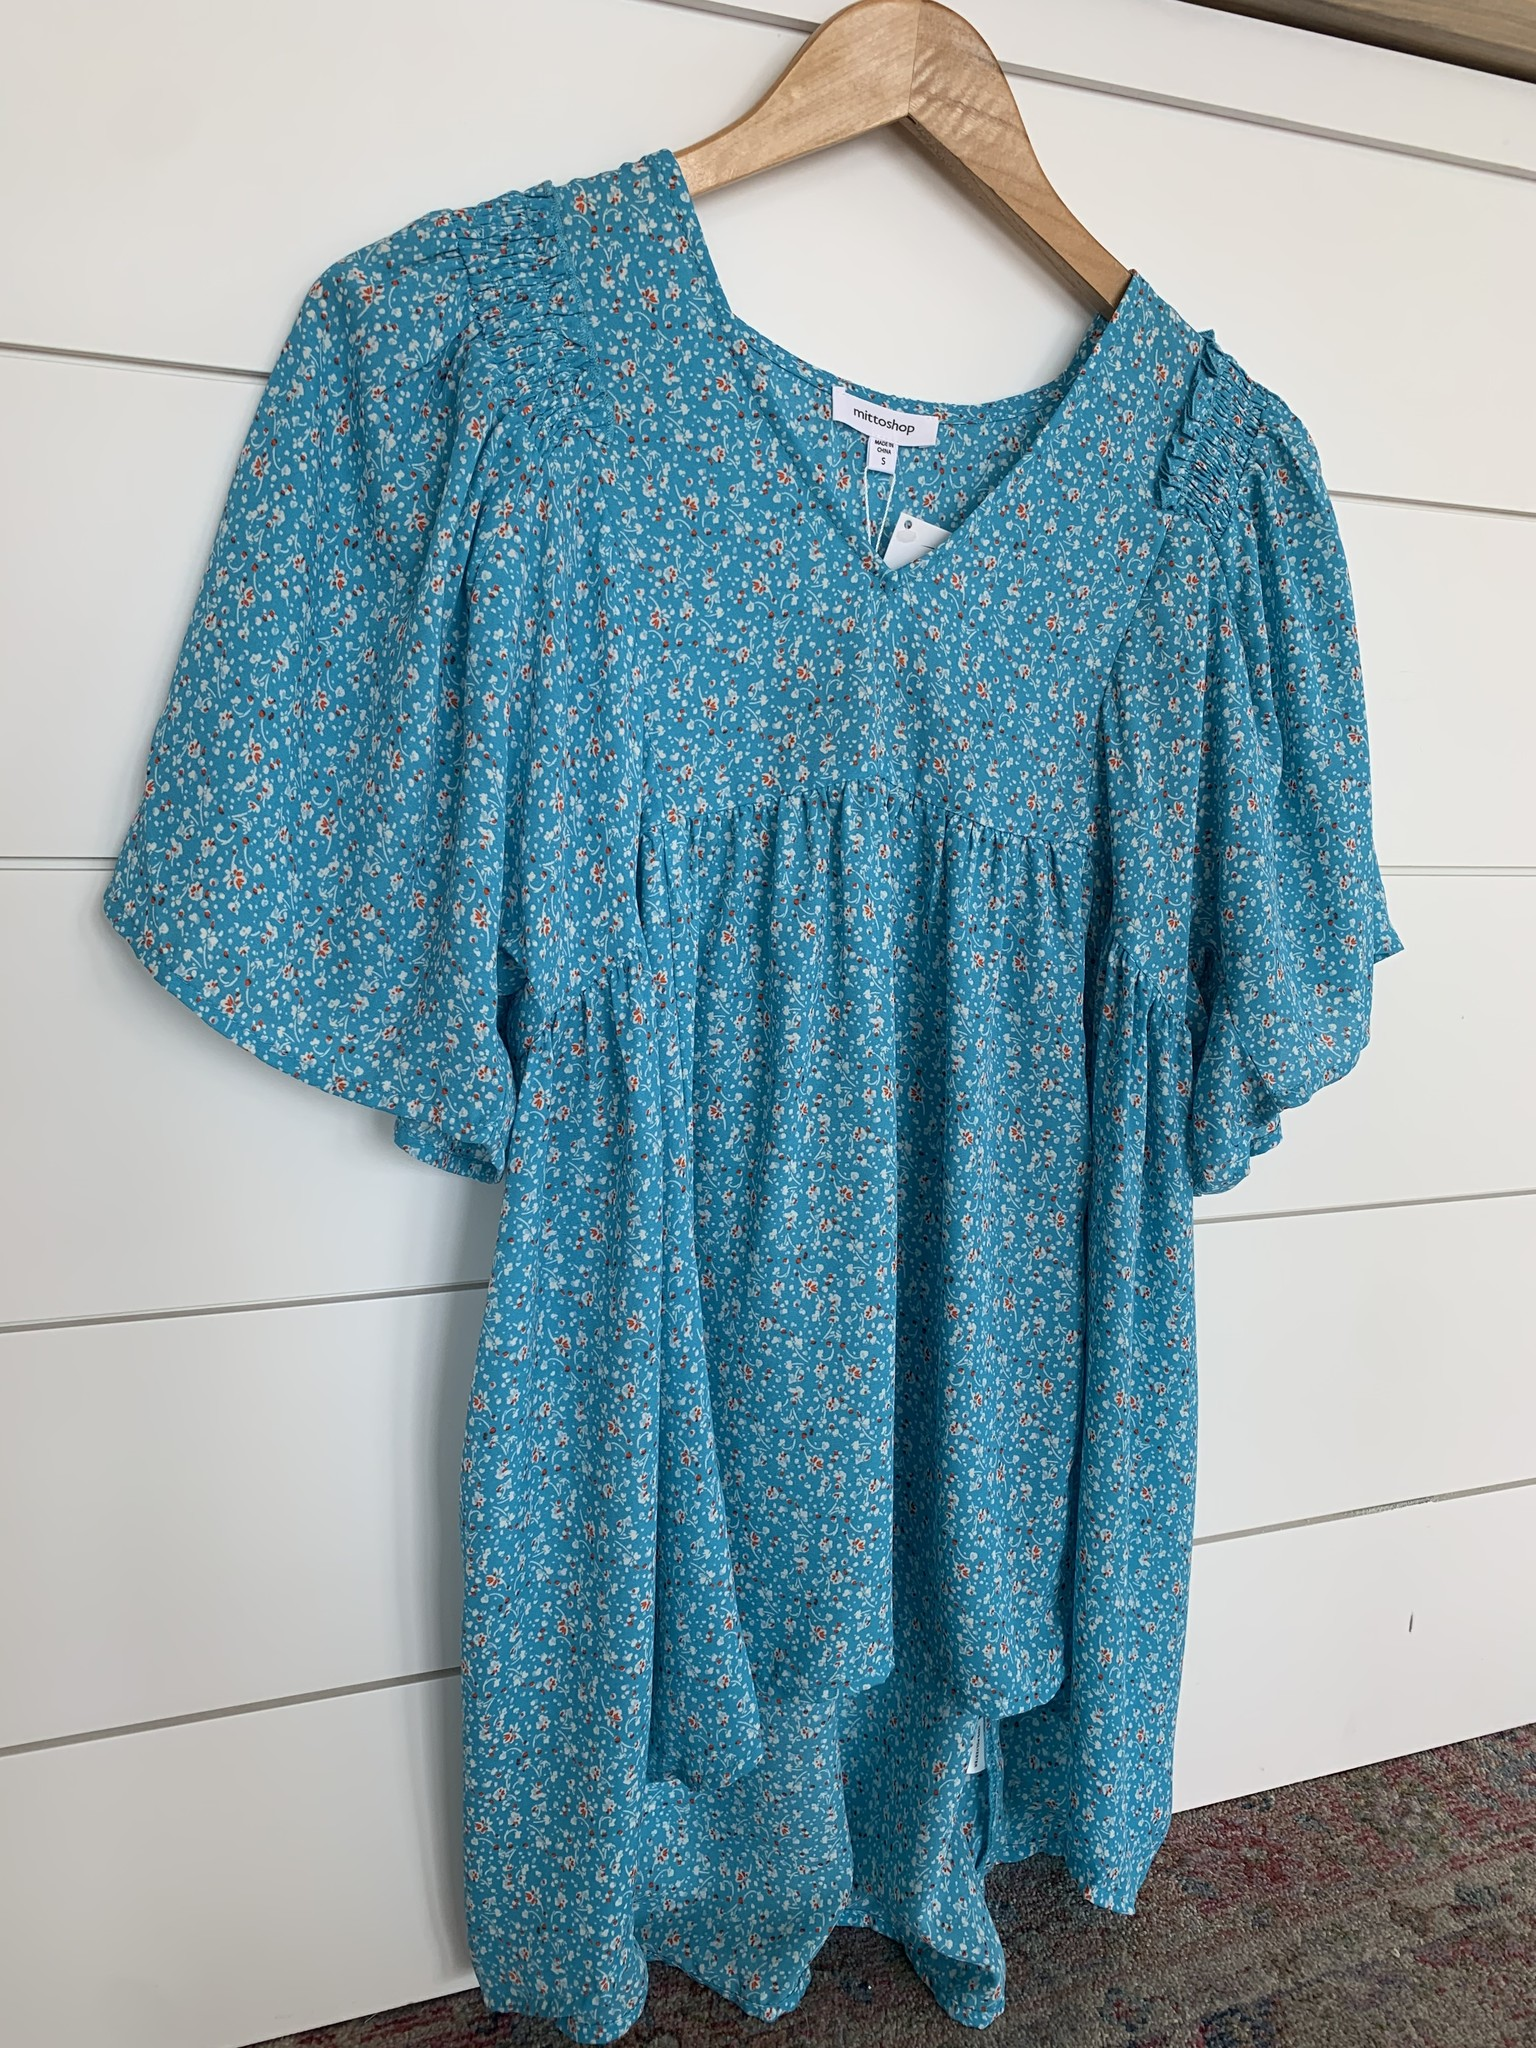 Sky Blue Printed Empire Waist Top